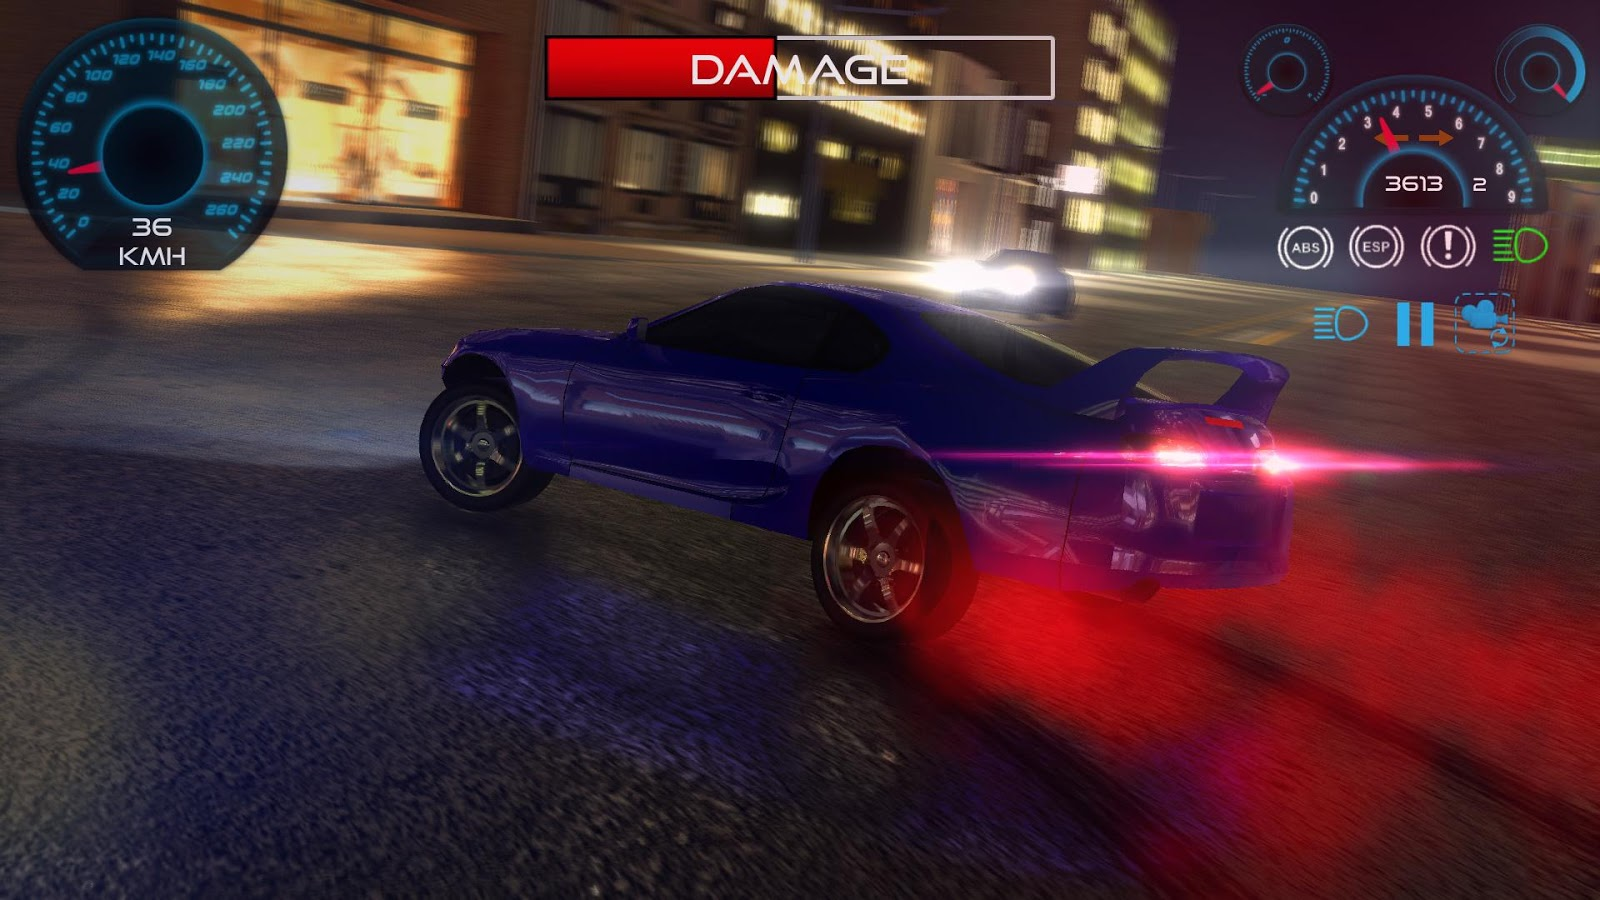 Super car city driving sim free games free online - City Car Driving Simulator Screenshot